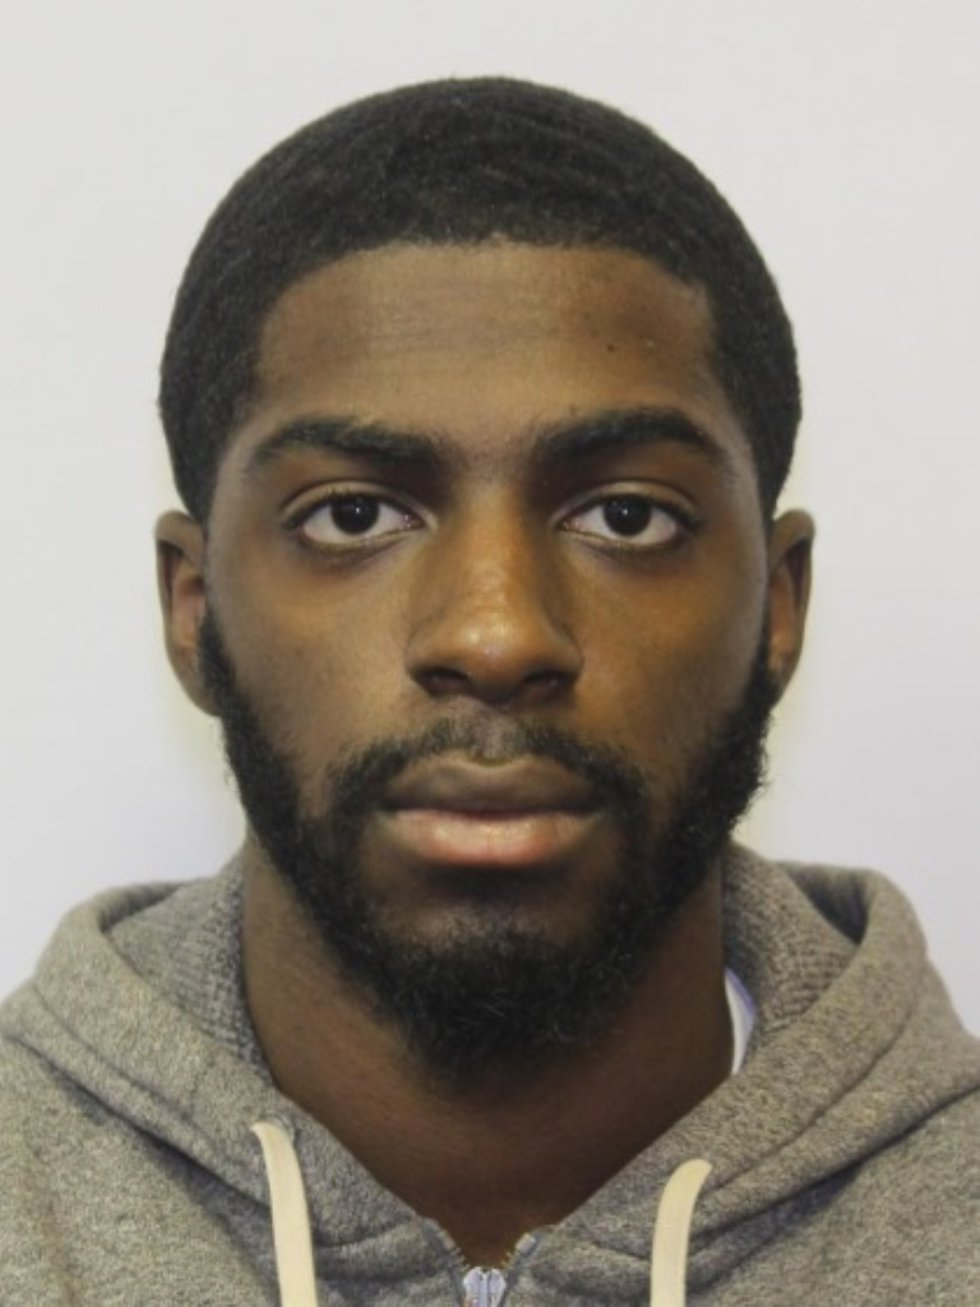 Zyquon Kevontae Moody of Hamilton, Ohio has been charged with Felonious Assault